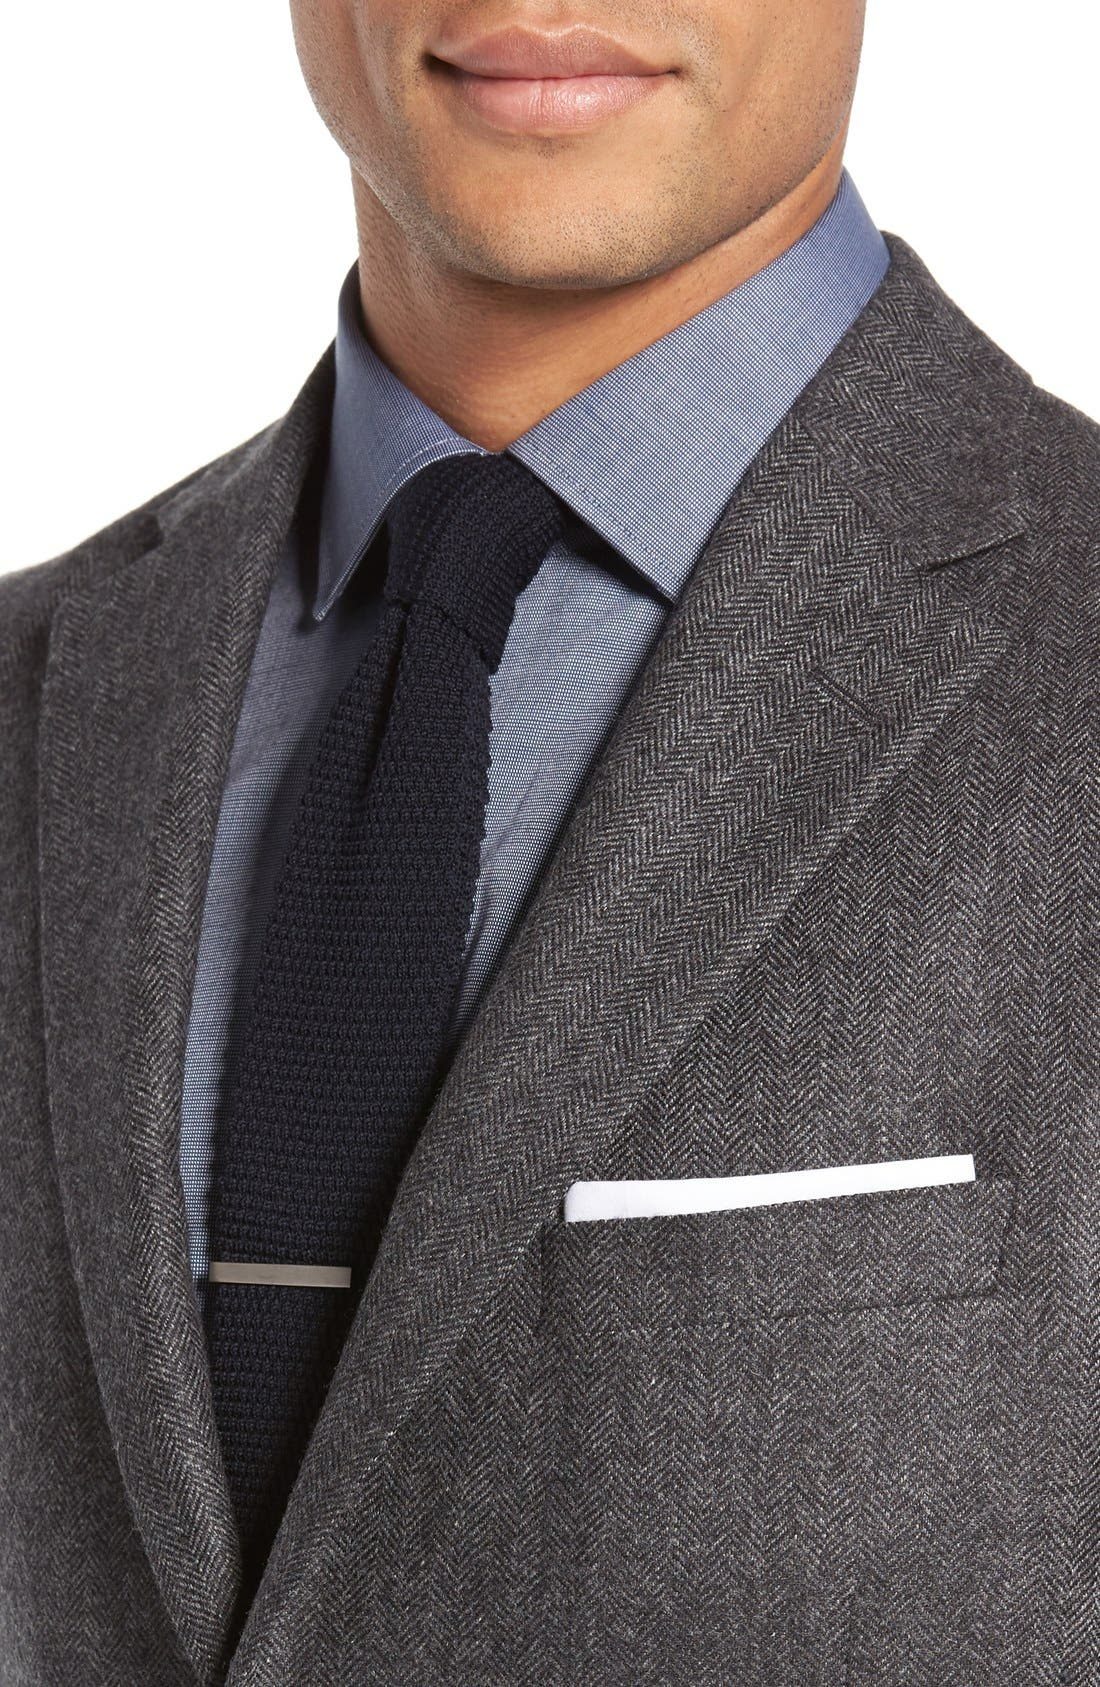 Beckett Classic Fit Herringbone Cashmere Sport Coat,                             Alternate thumbnail 4, color,                             Charcoal